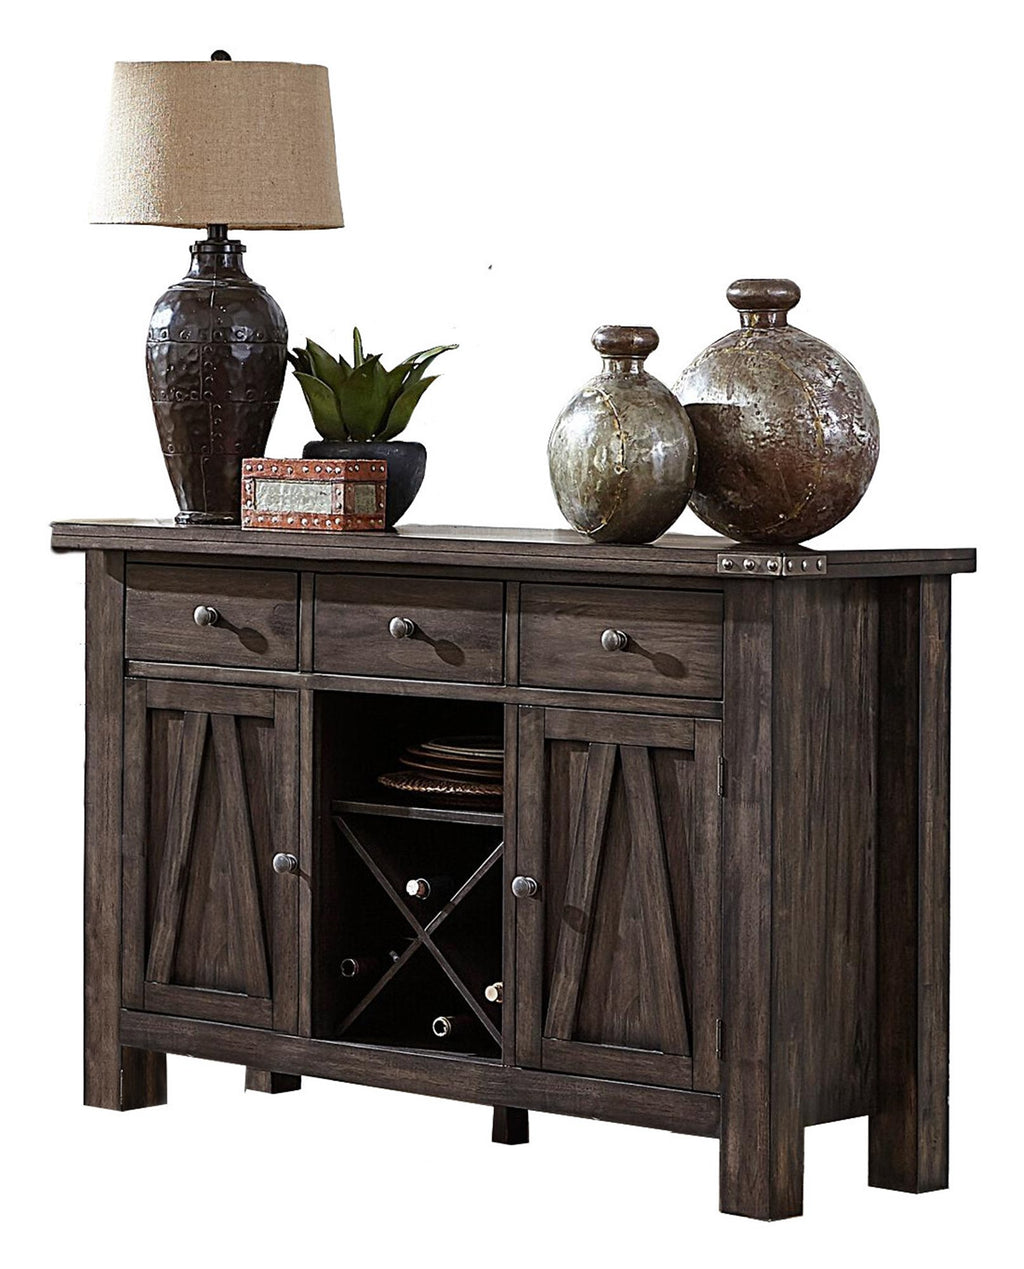 Homelegance Mattawa Server in Rustic Brown